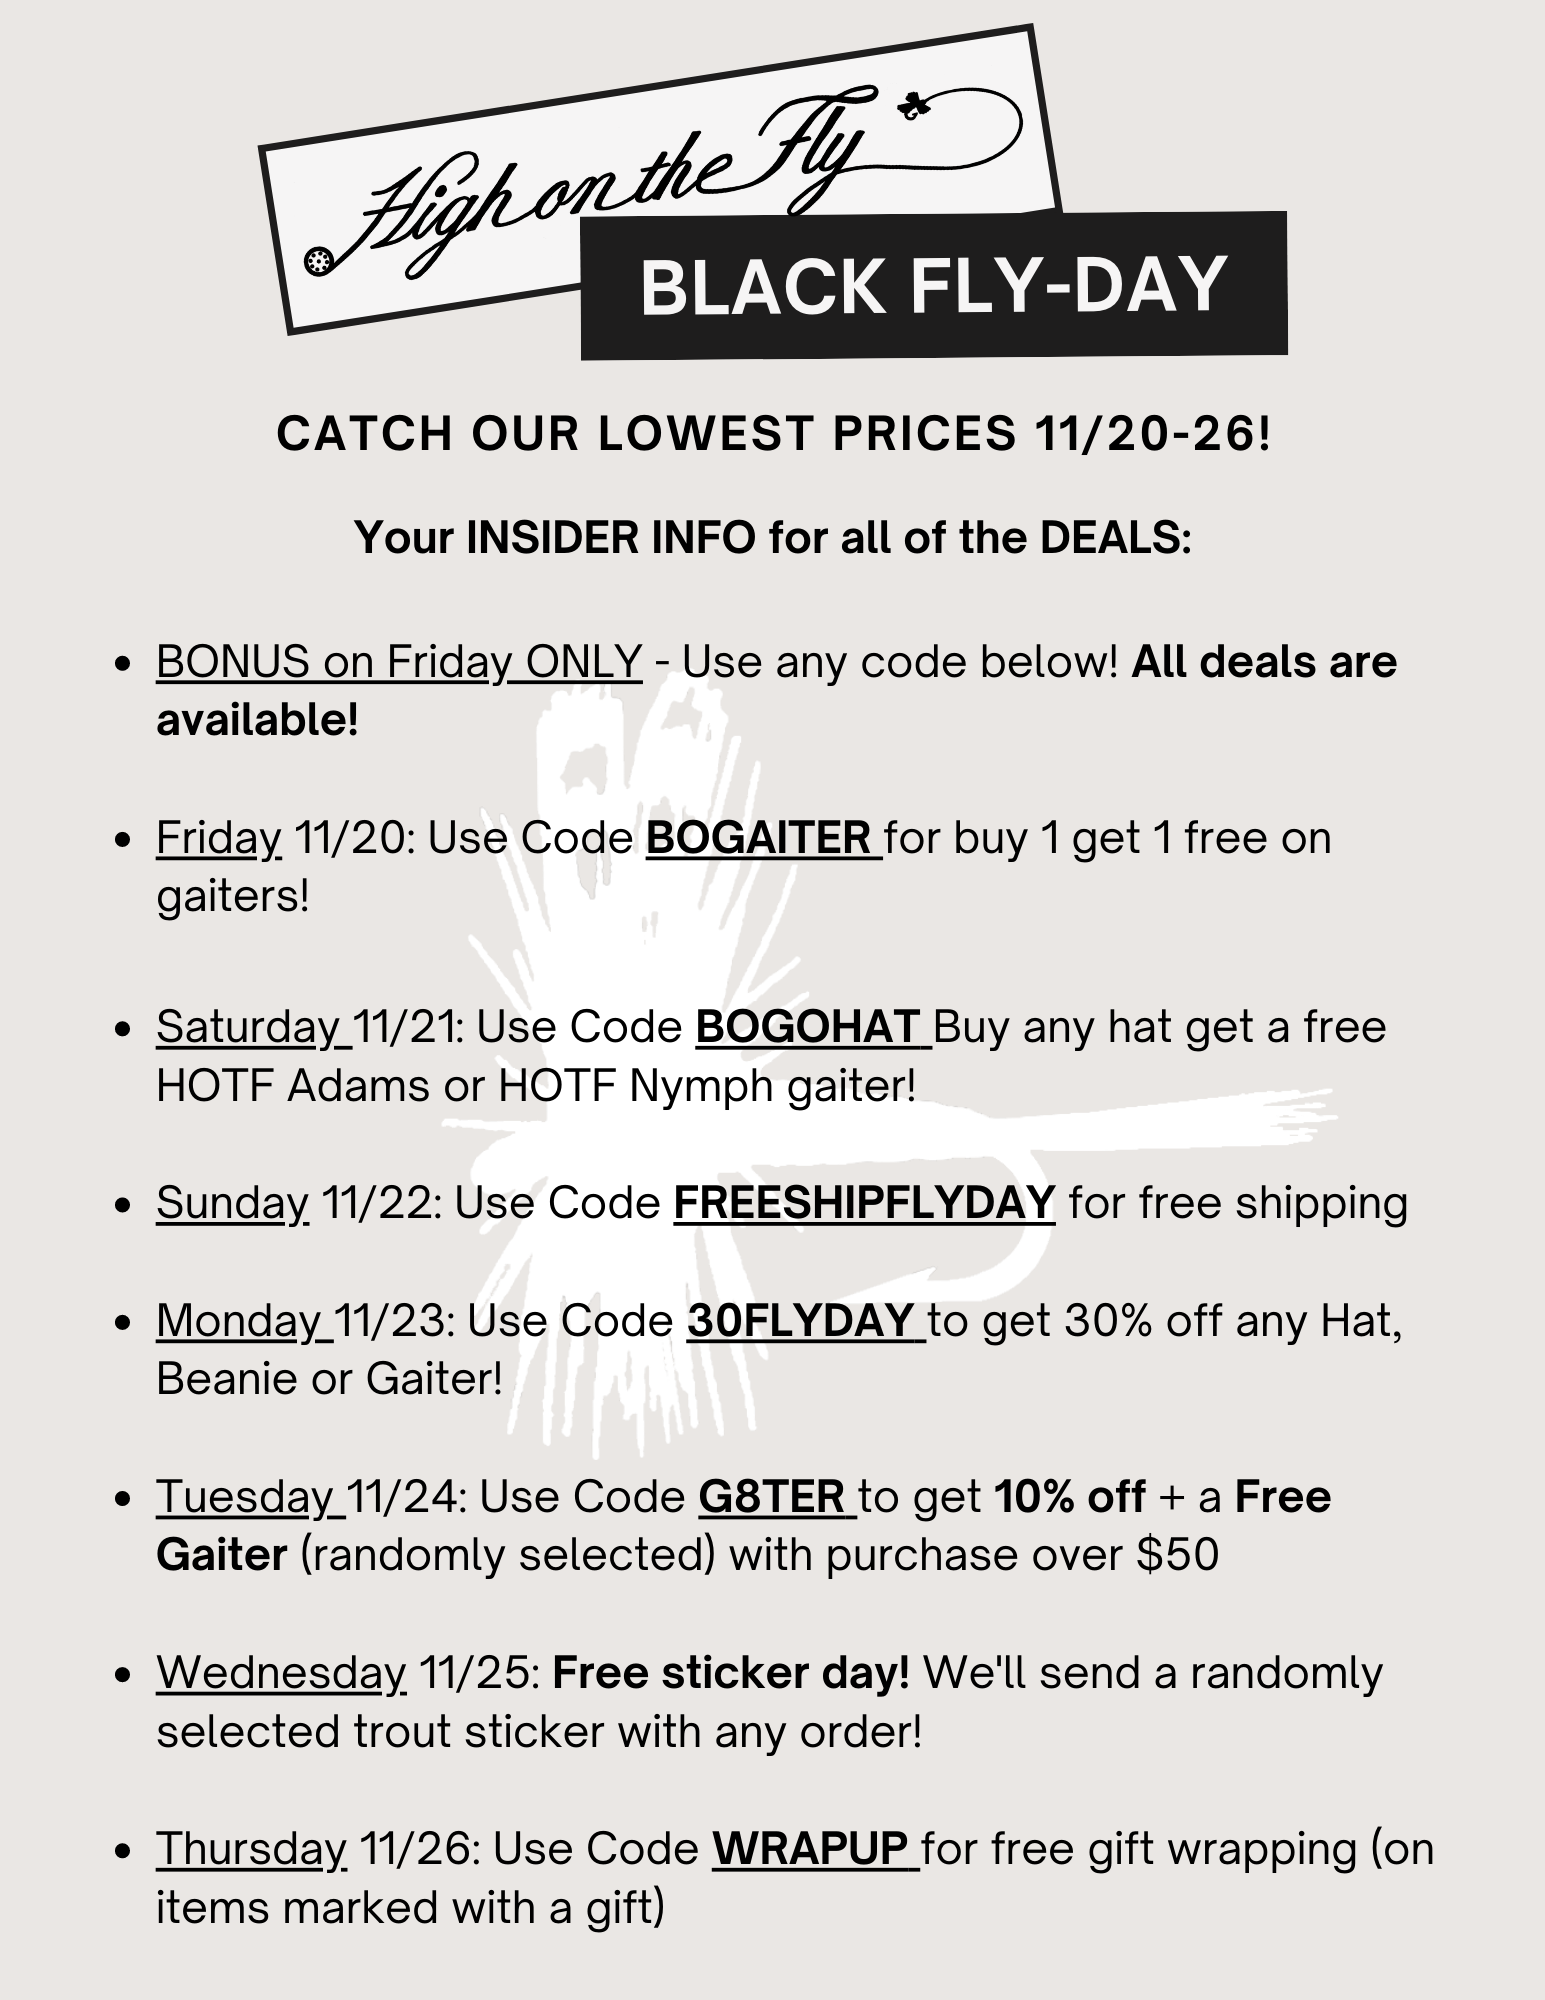 Black Fly-Day (friday) Deals